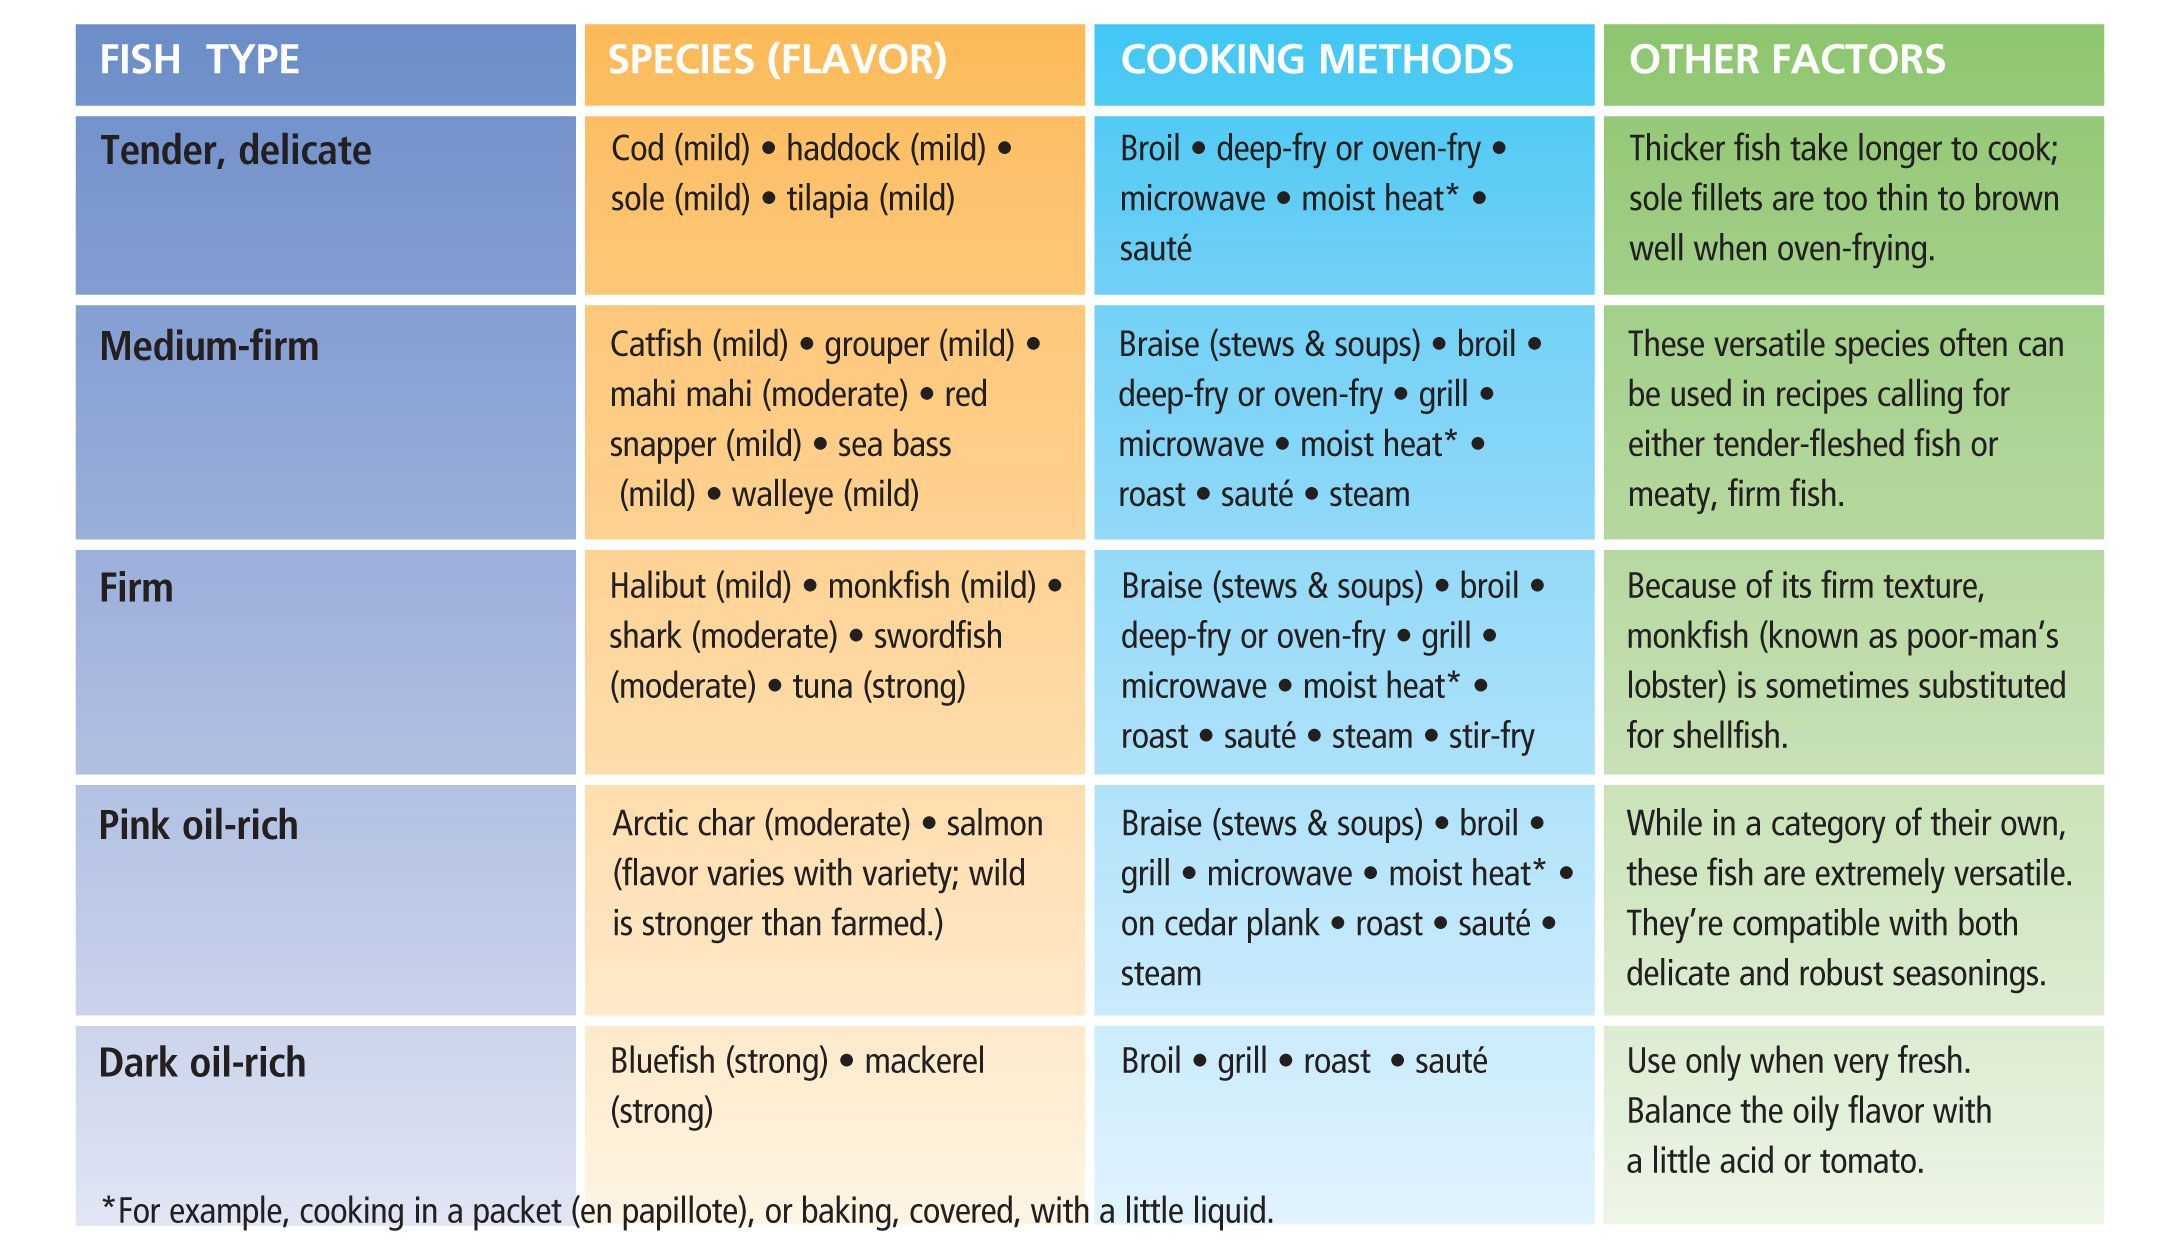 Fish cooking and preference guide recipes pinterest for Healthiest types of fish